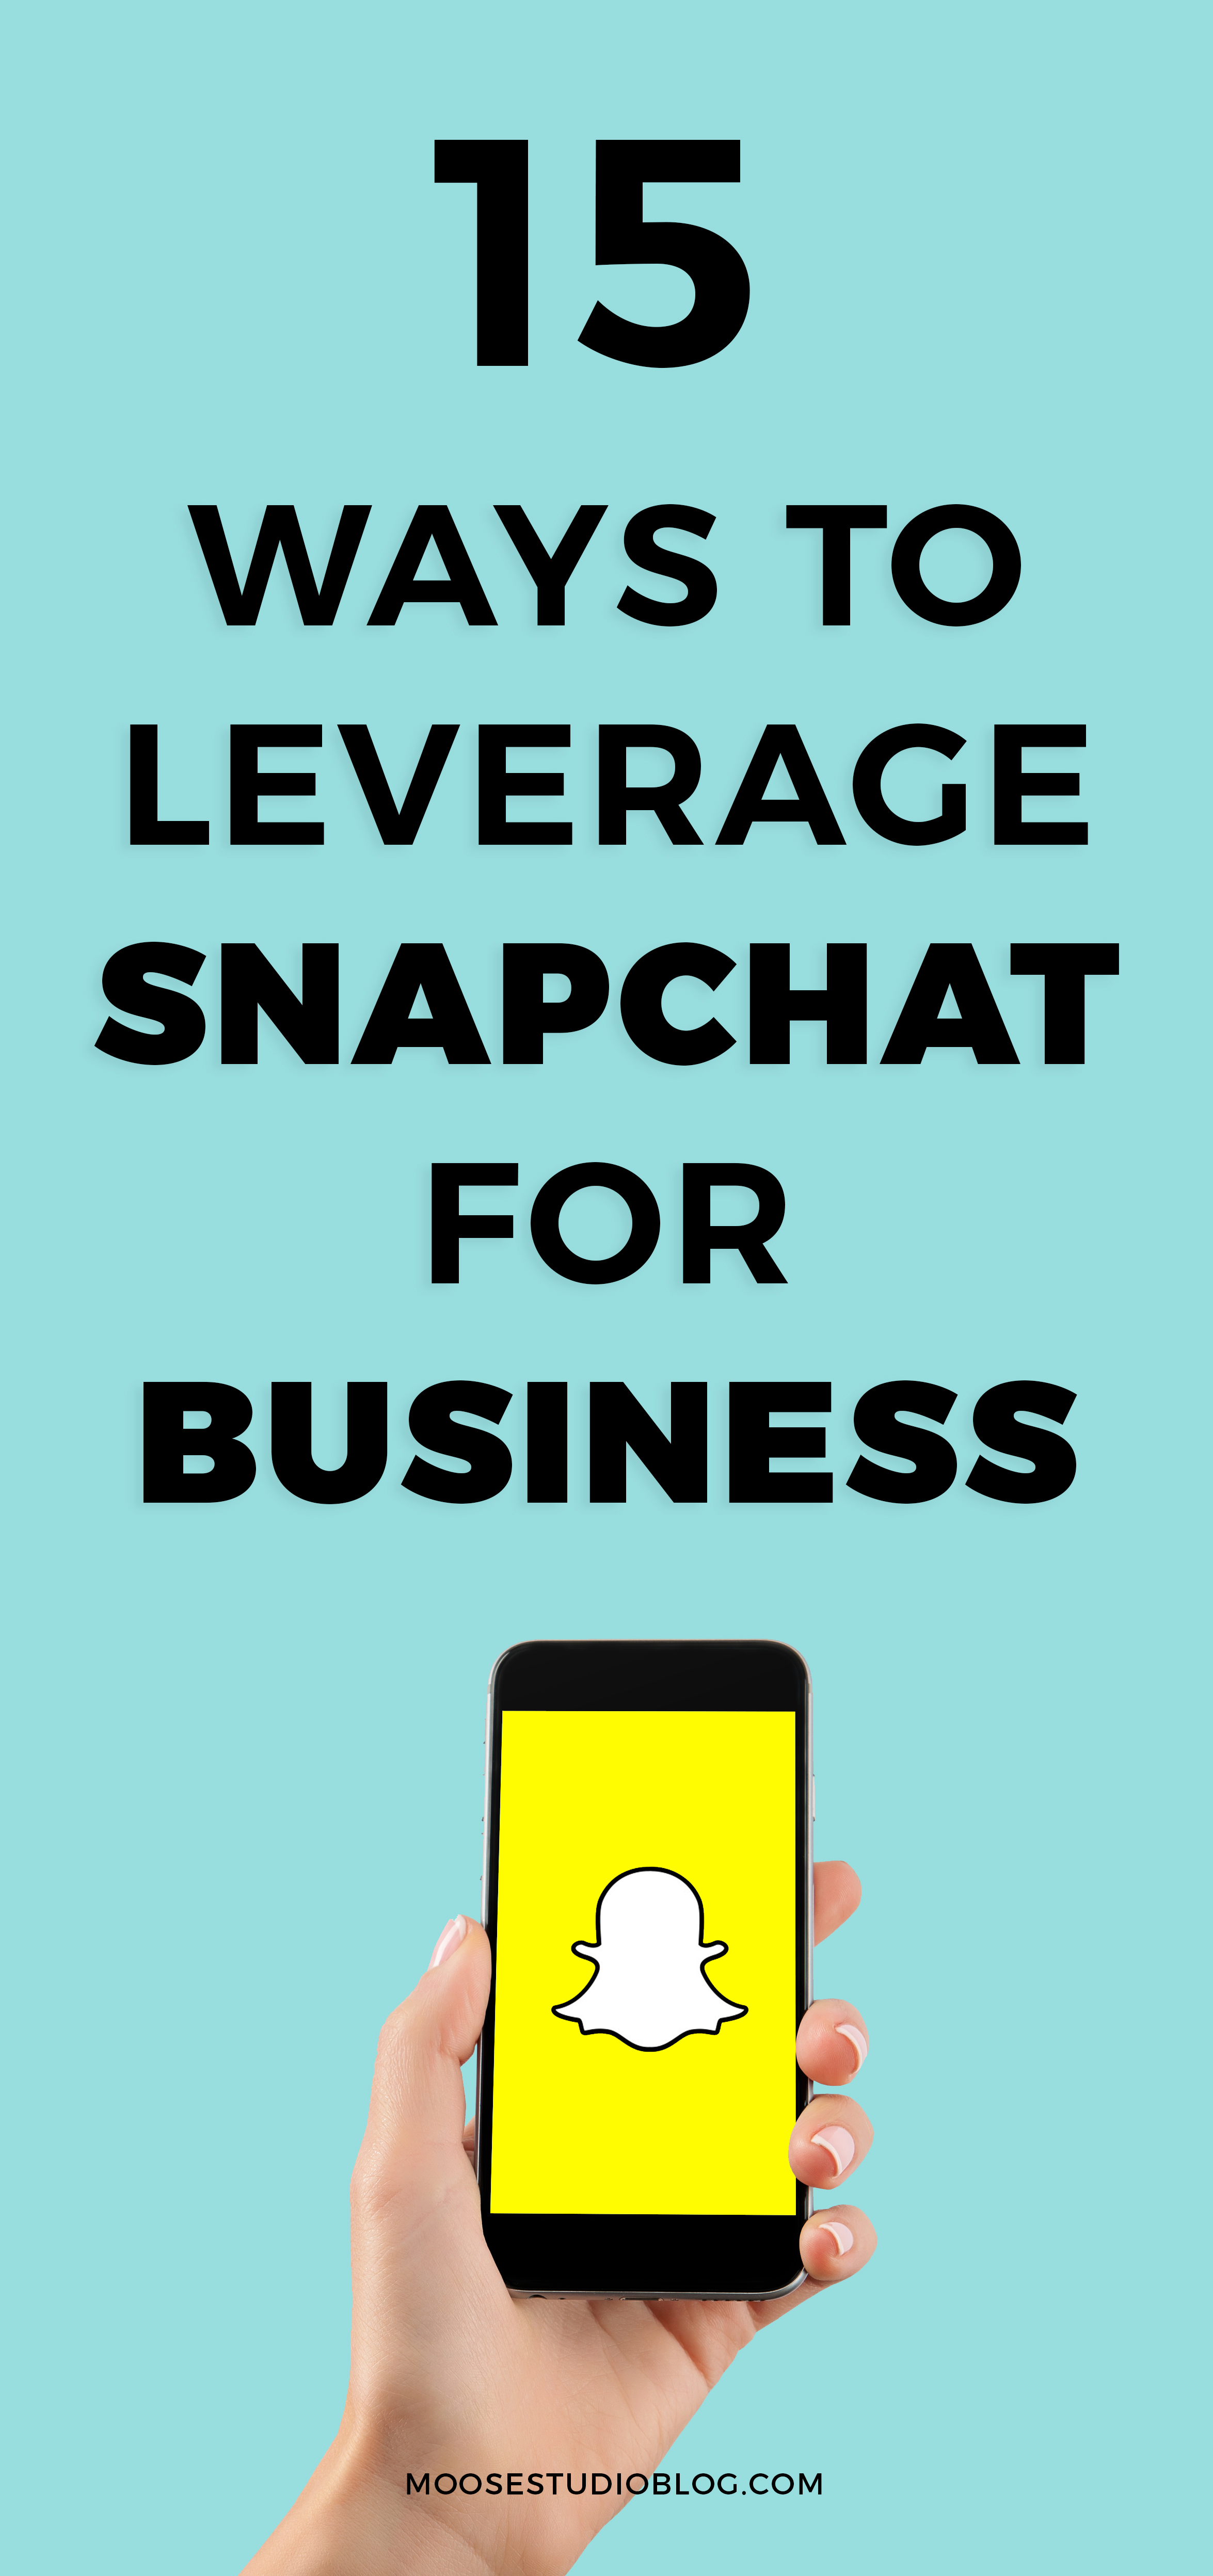 15 Ways To Leverage The Power Of Snapchat For Business